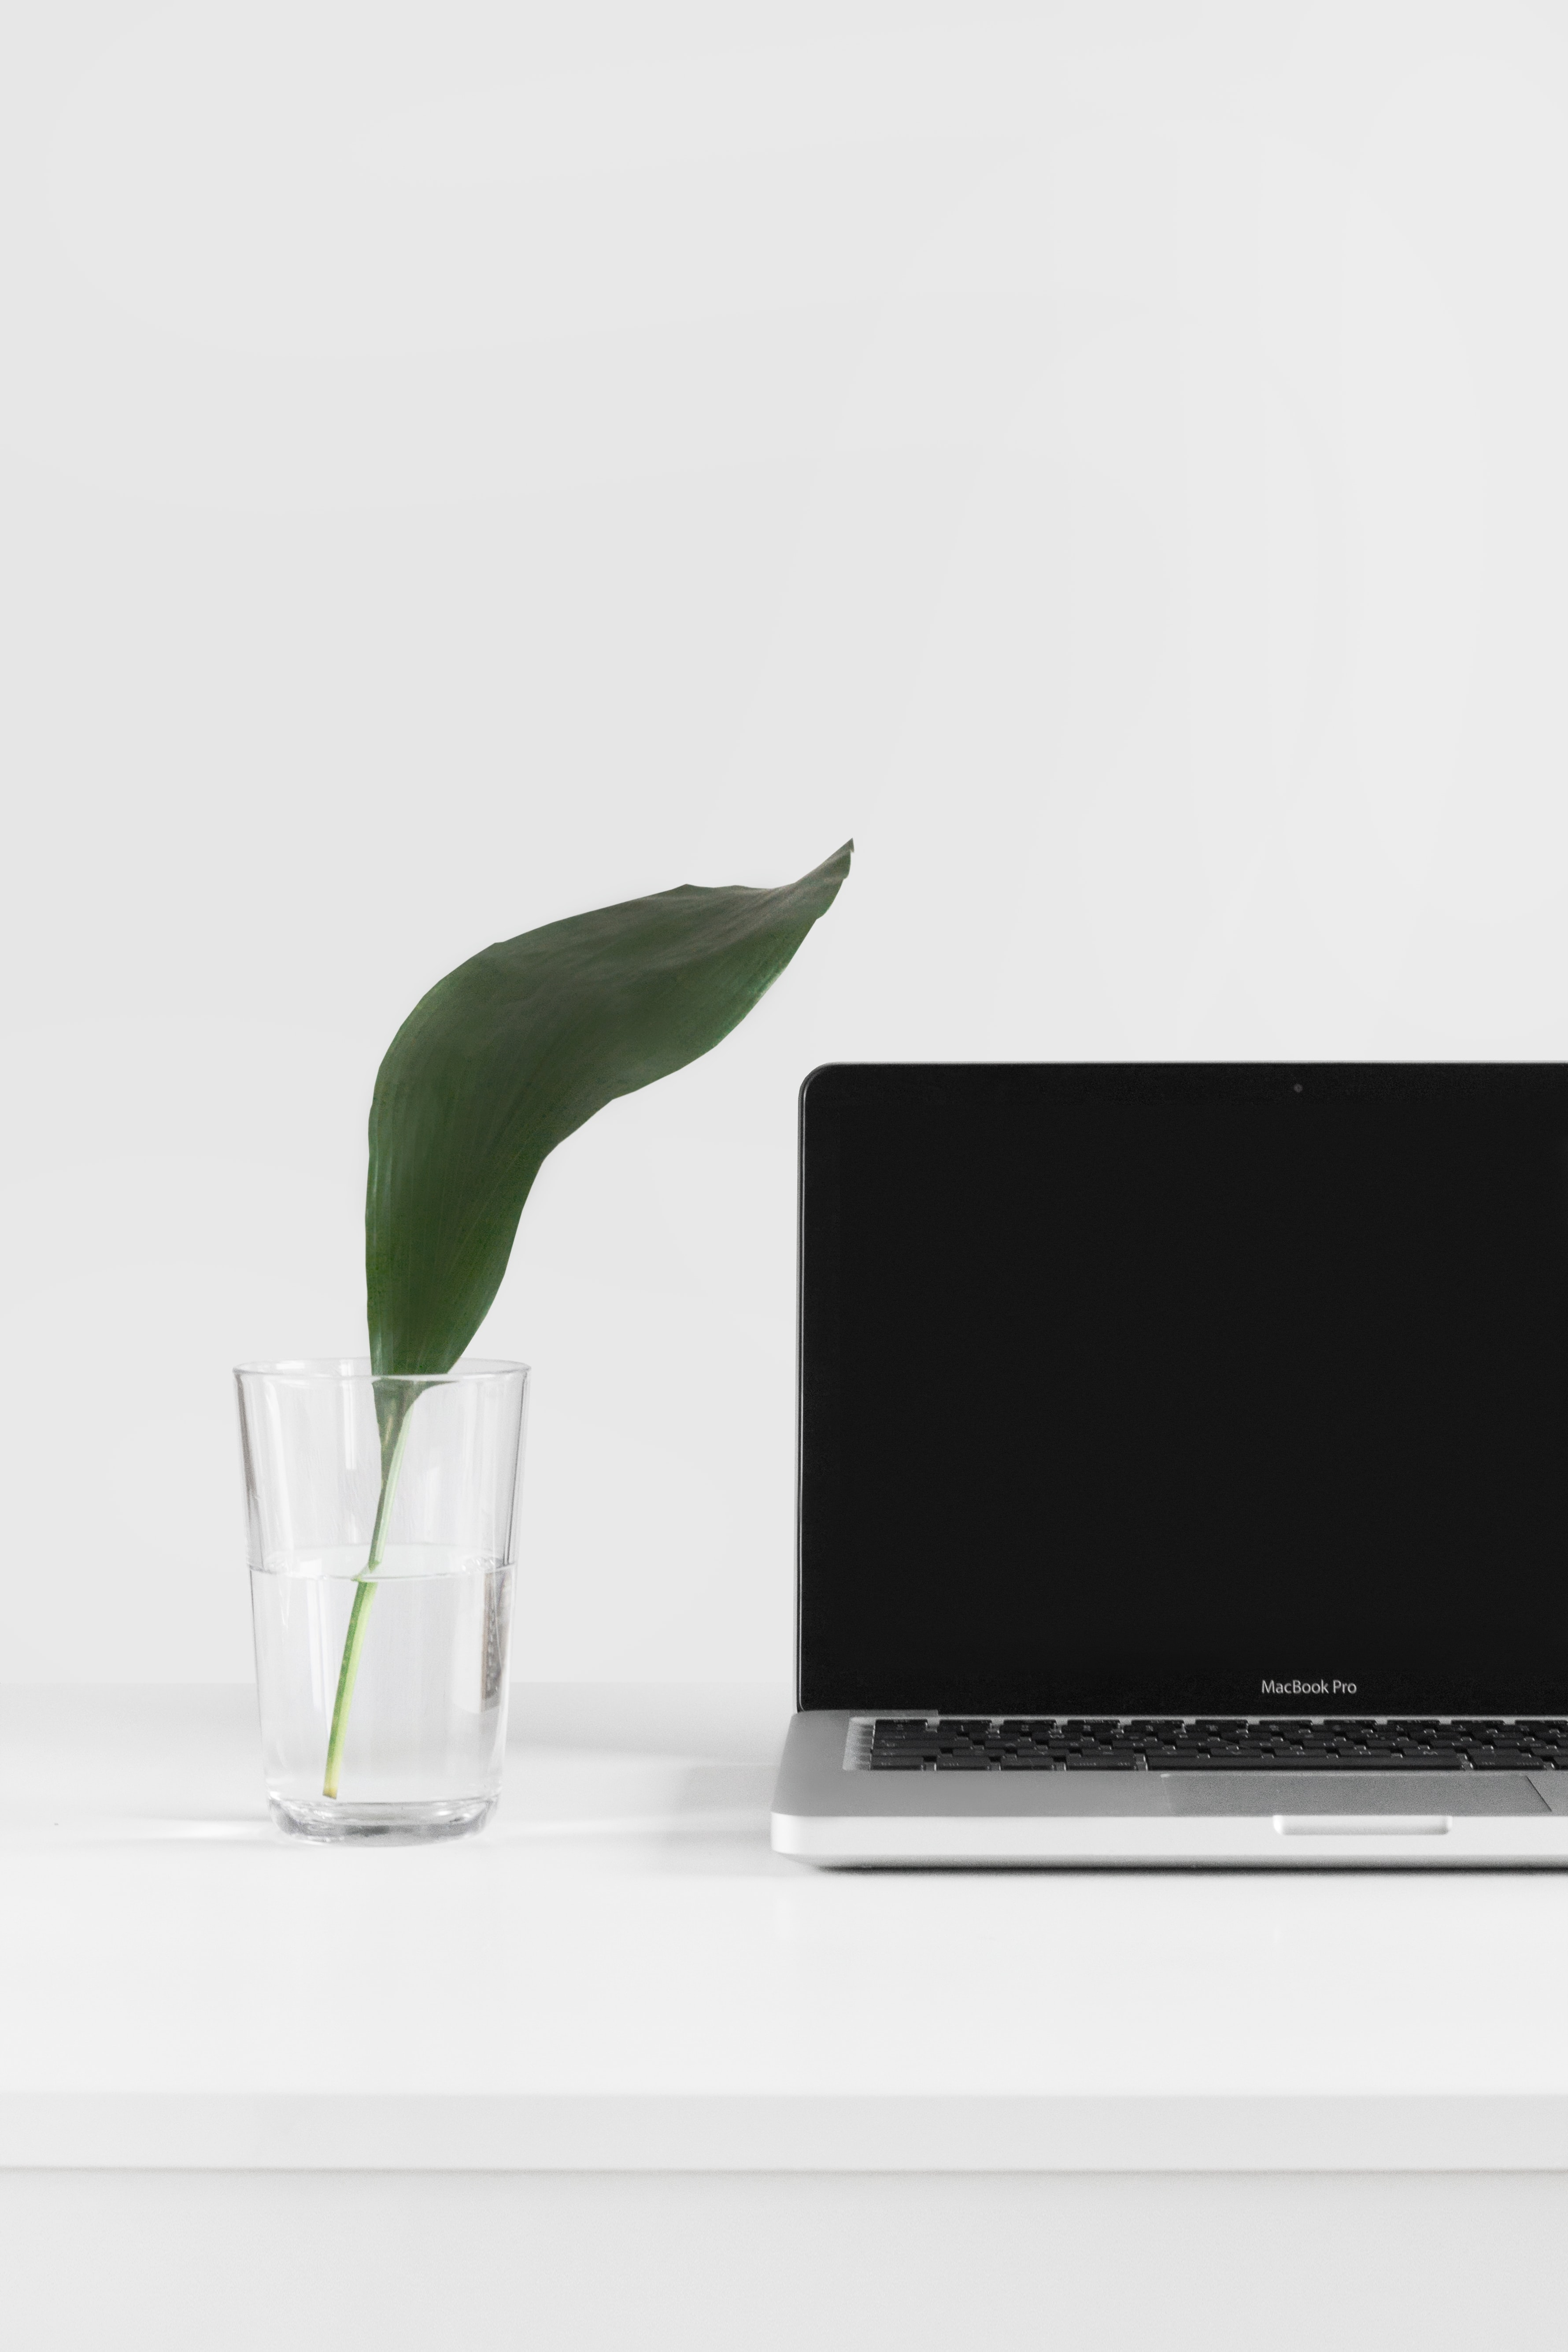 MacBook Pro beside plant in vase